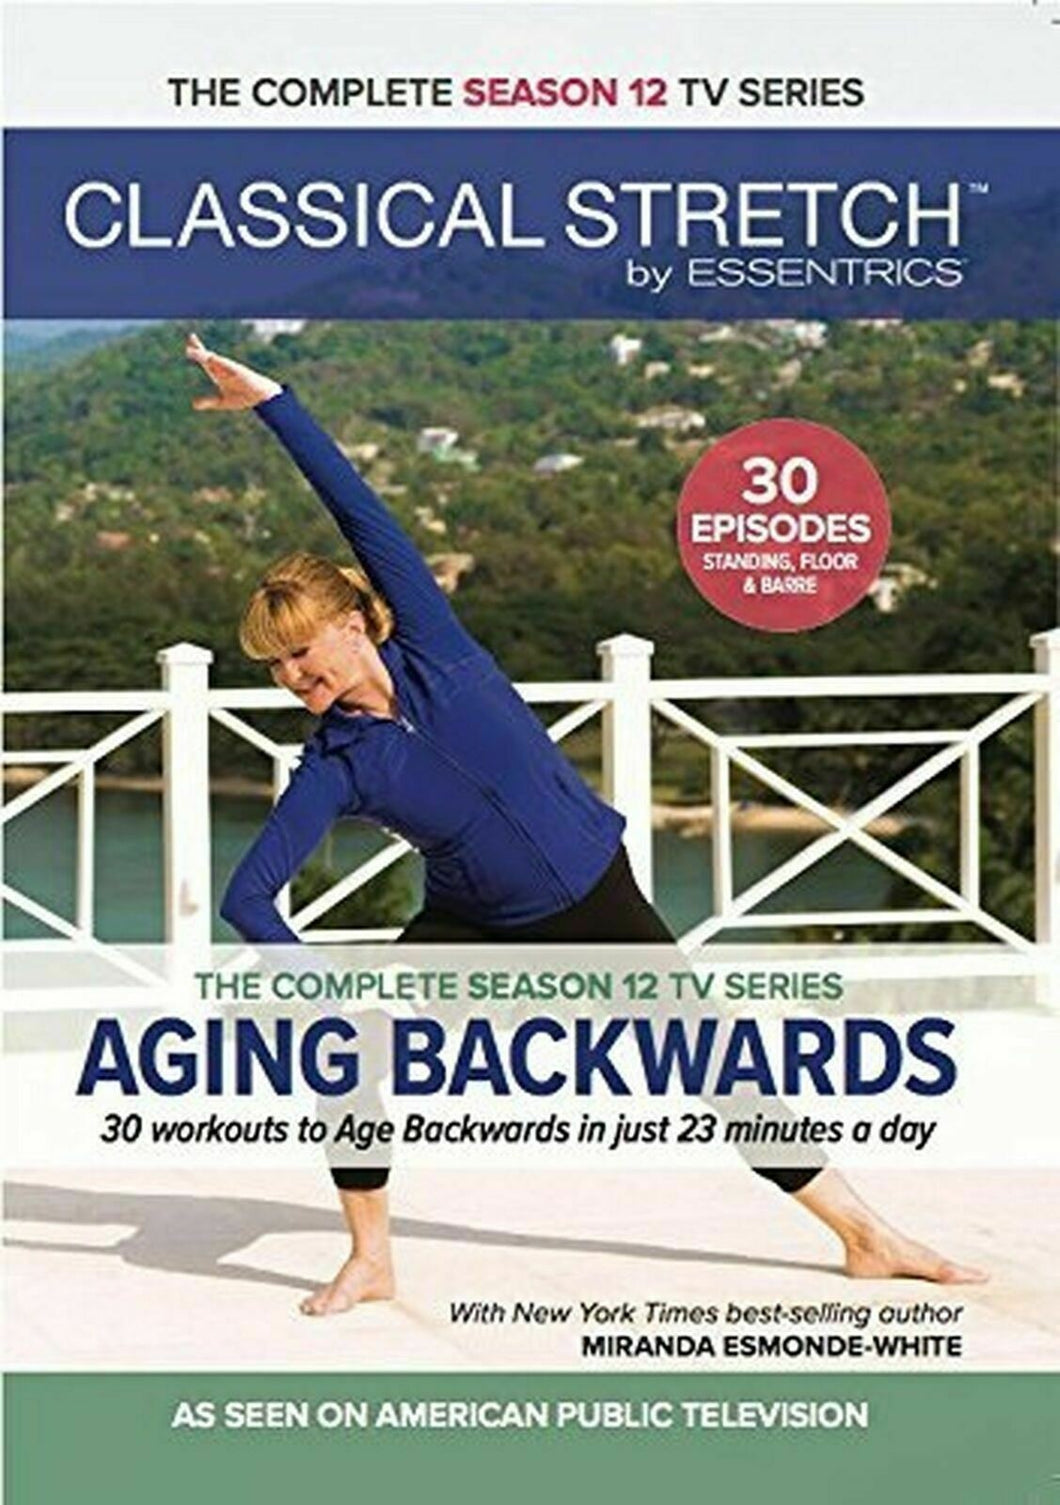 Classical Stretch by Essentrics: Season 12 Aging Backwards Fitness DVD's - Aydenns